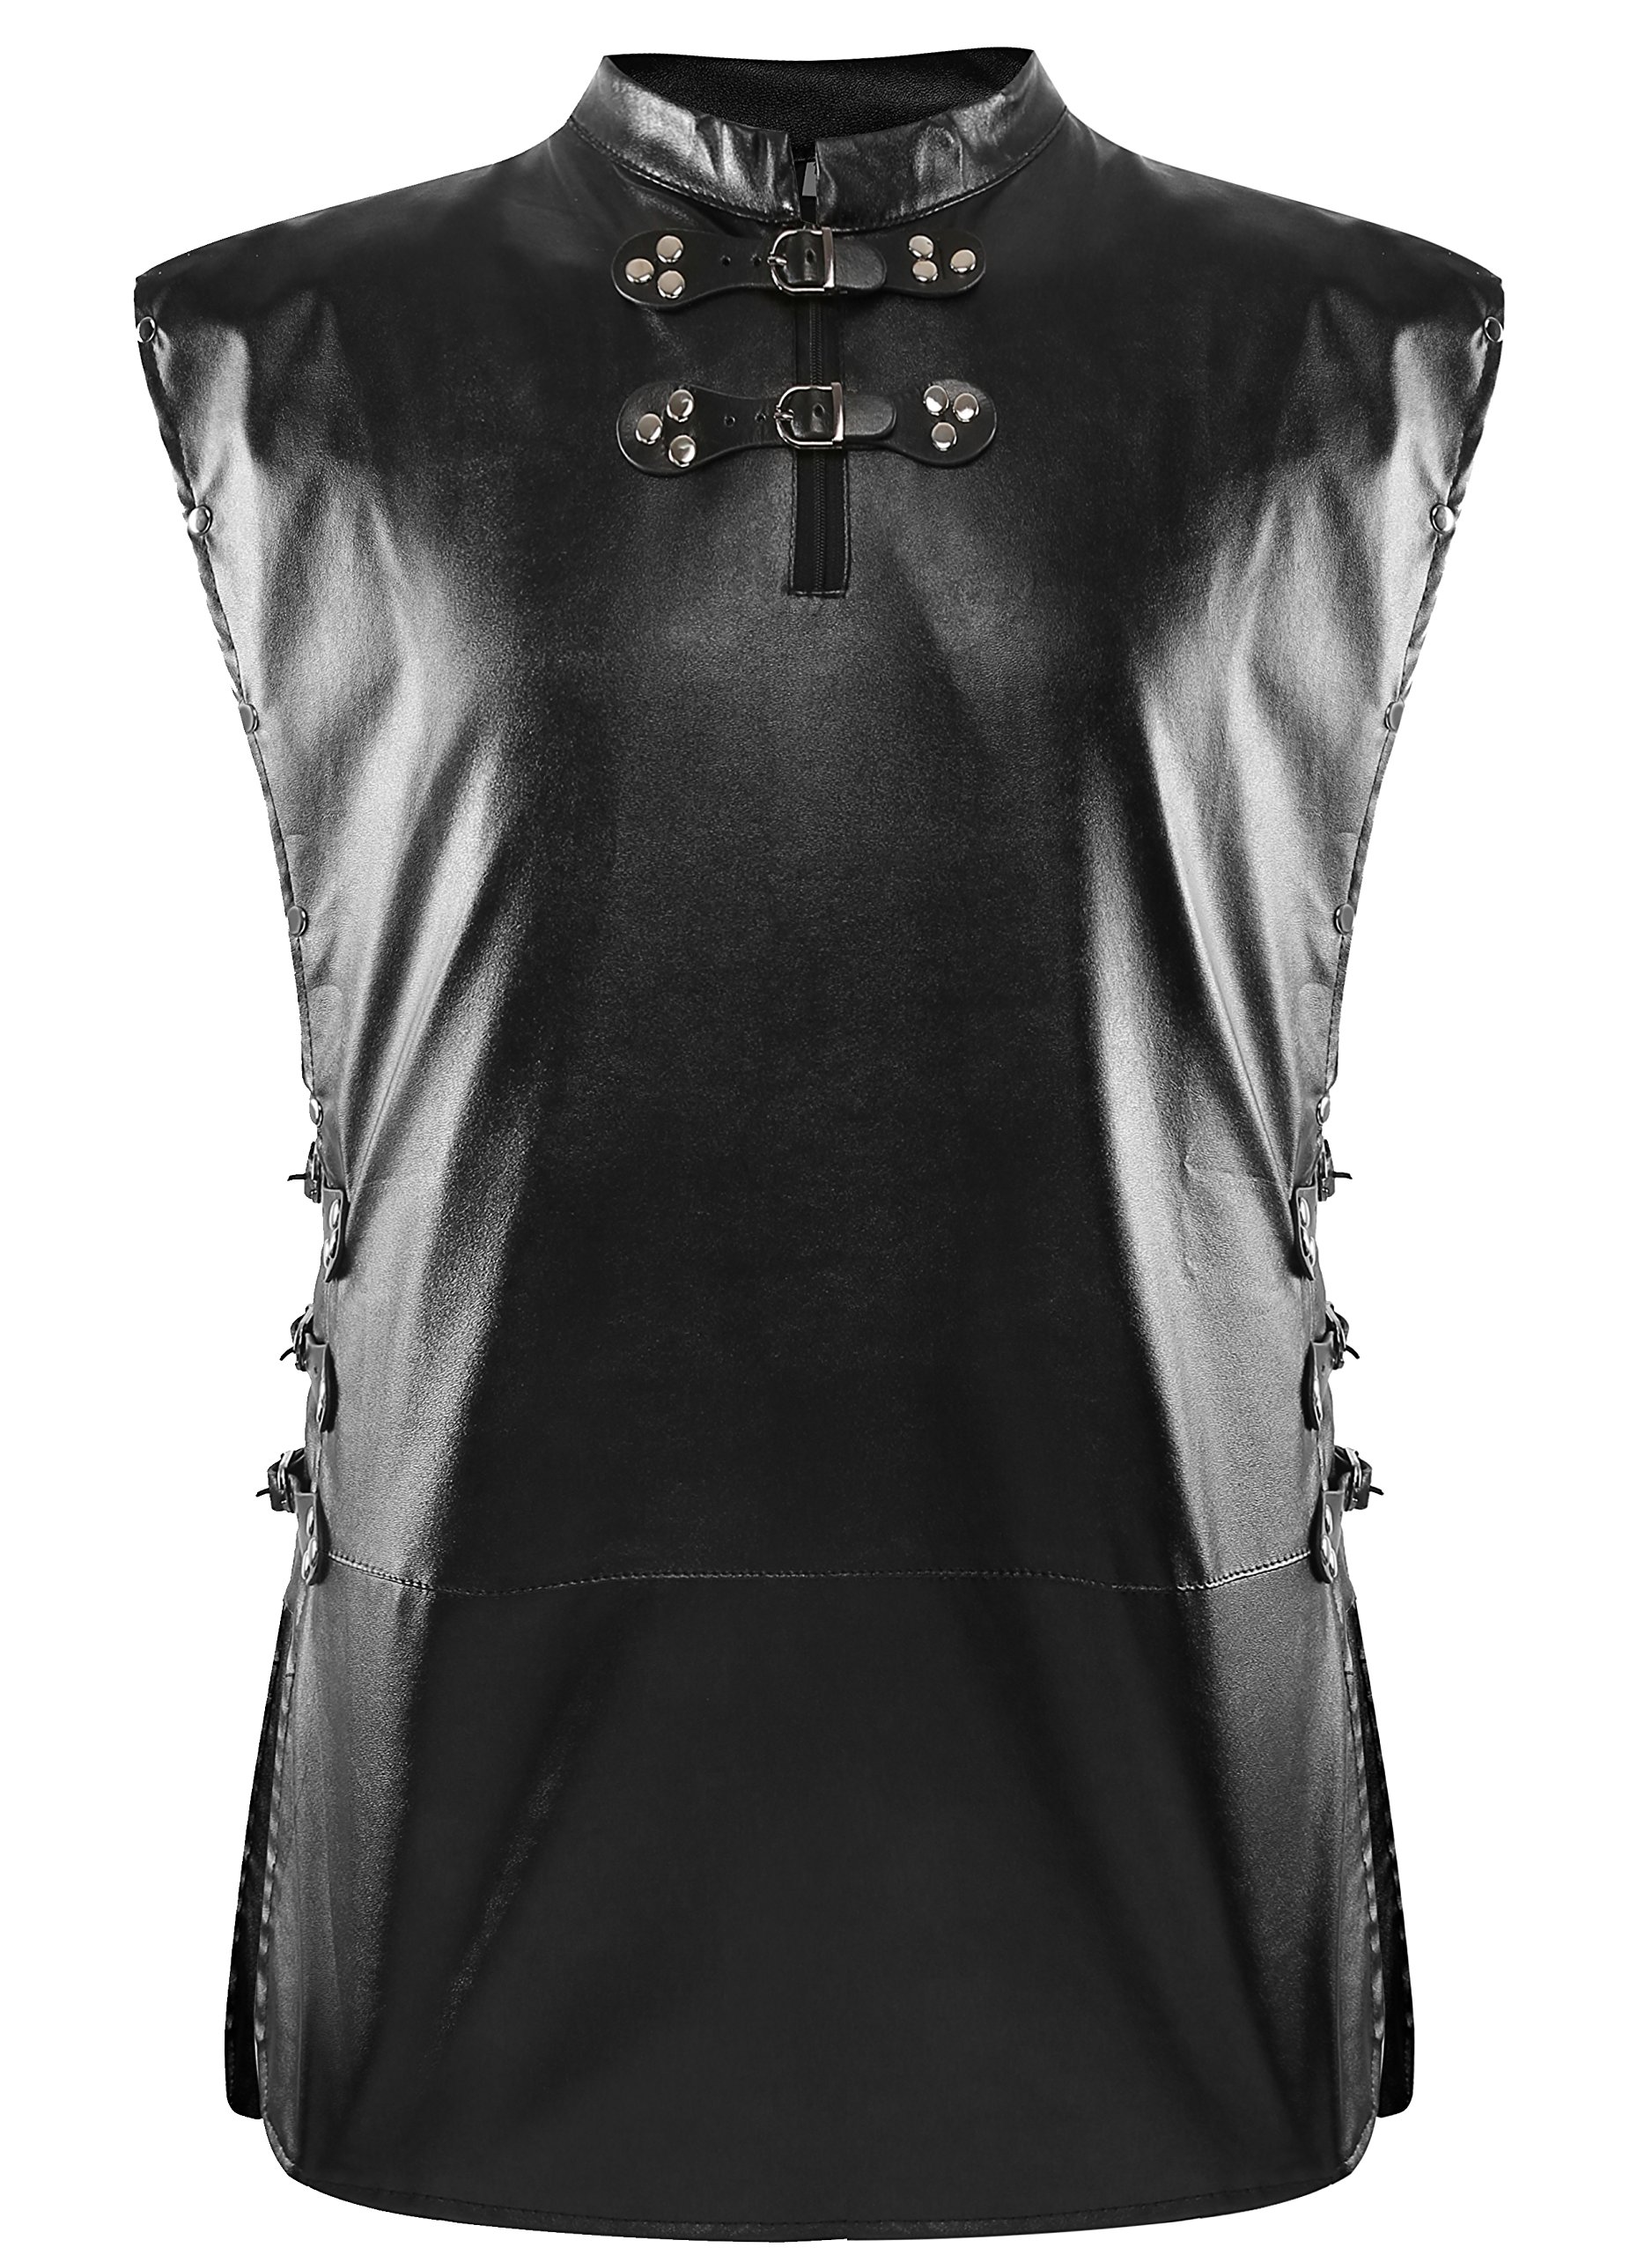 1stvital Jon Snow Knights Watch Cosplay Halloween Costume Cape Outfit Men's XXX-Large by 1stvital (Image #3)